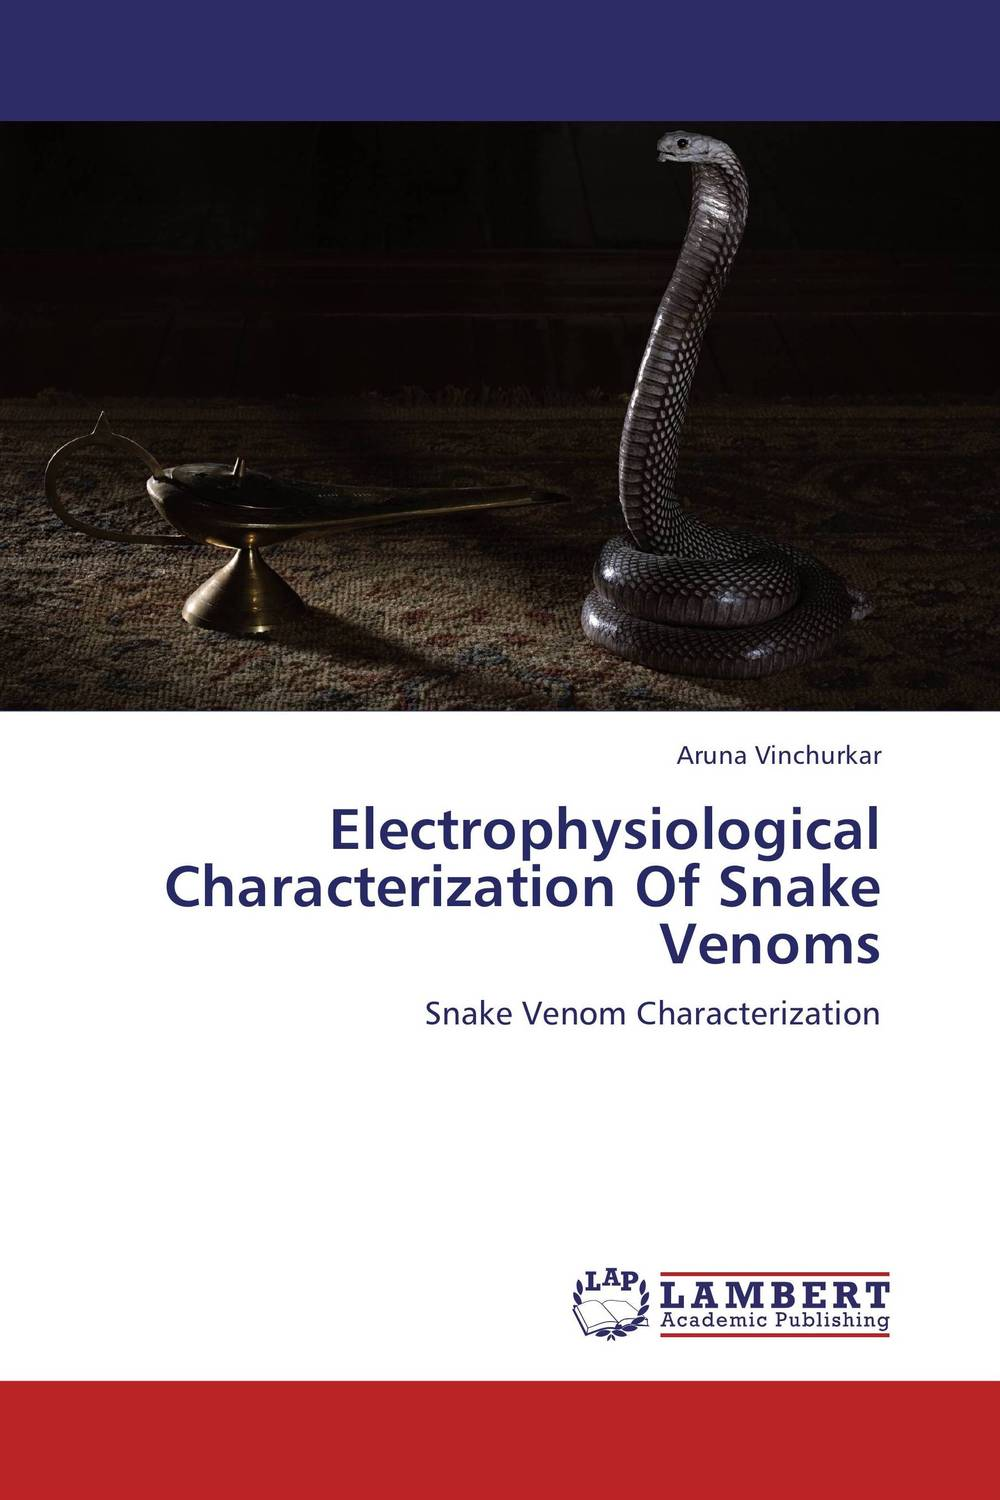 Electrophysiological Characterization Of Snake Venoms tapan kumar dutta and parimal roychoudhury diagnosis and characterization of bacterial pathogens in animal